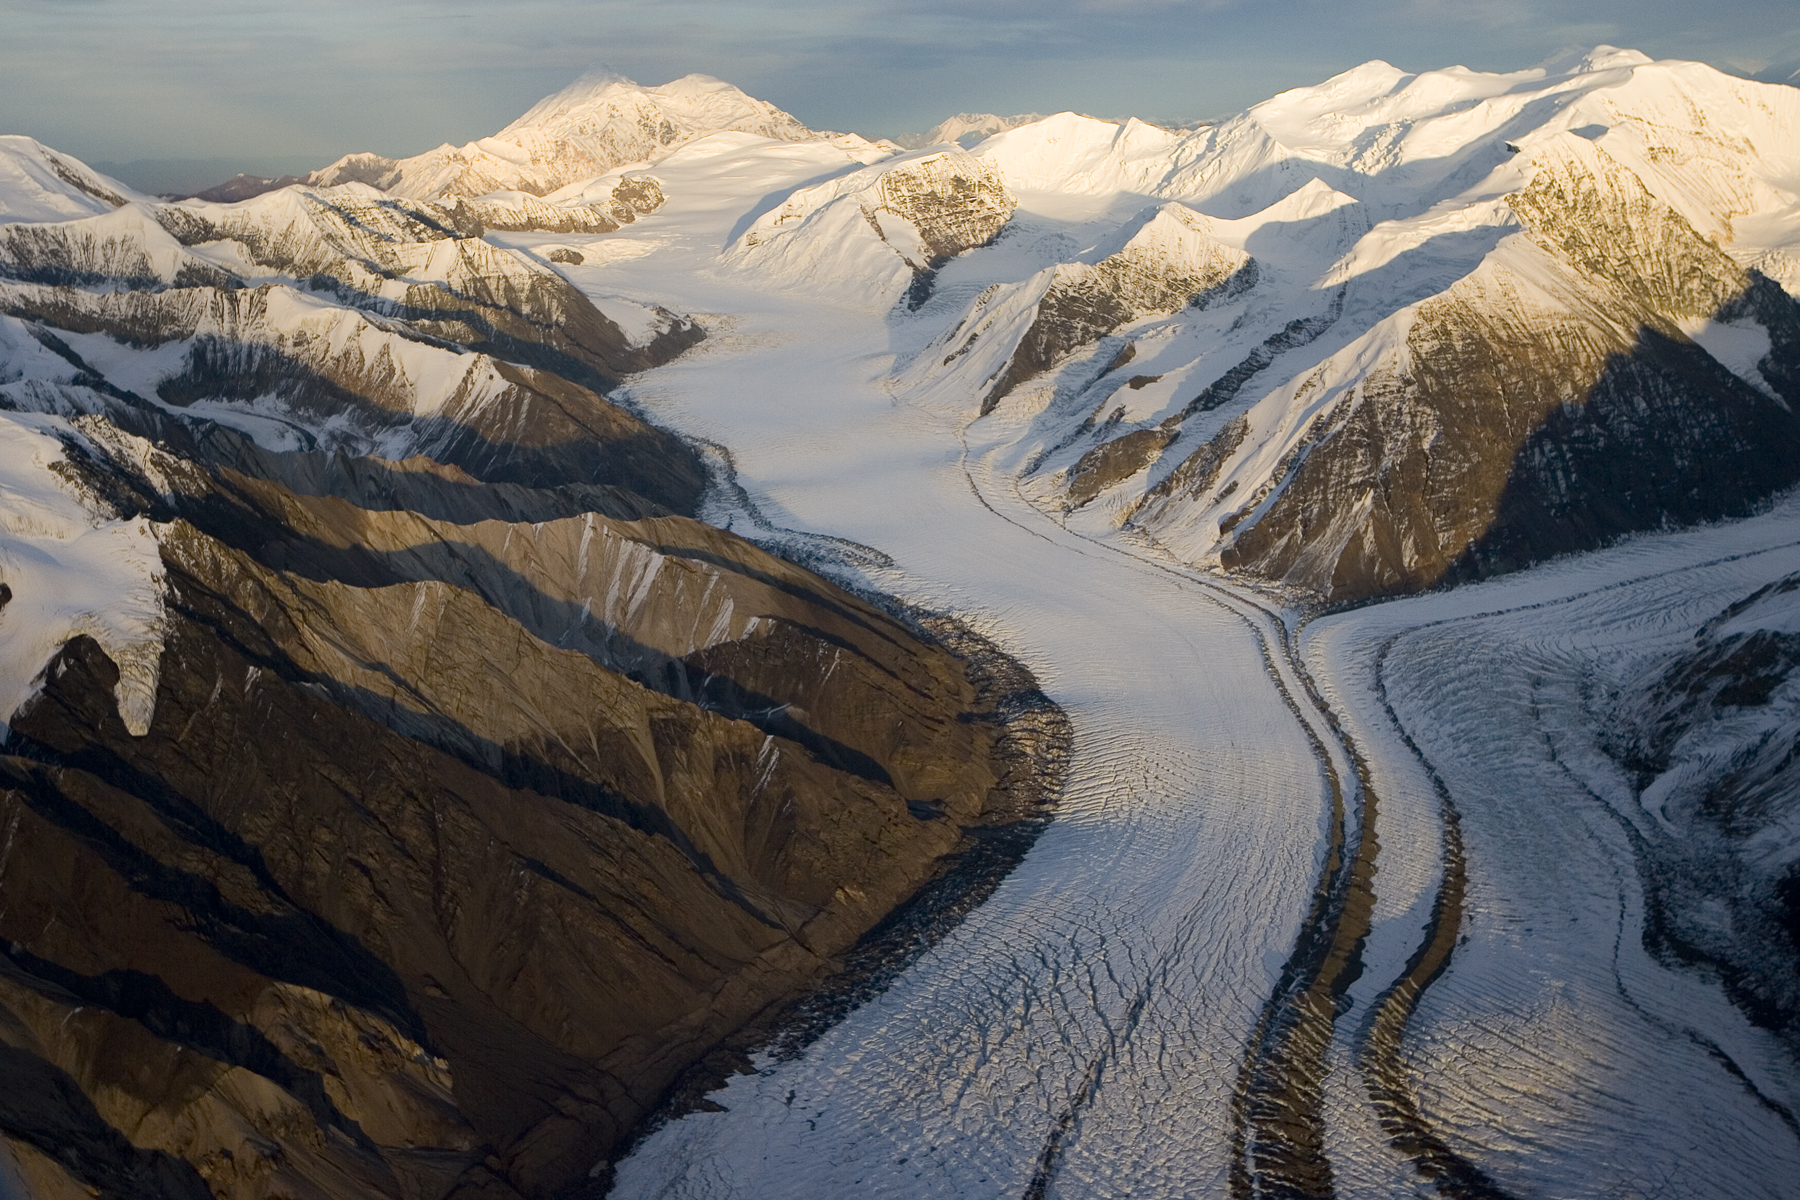 Aerial images of glaciers and mountains in Wrangell St. Elias range, Alaska